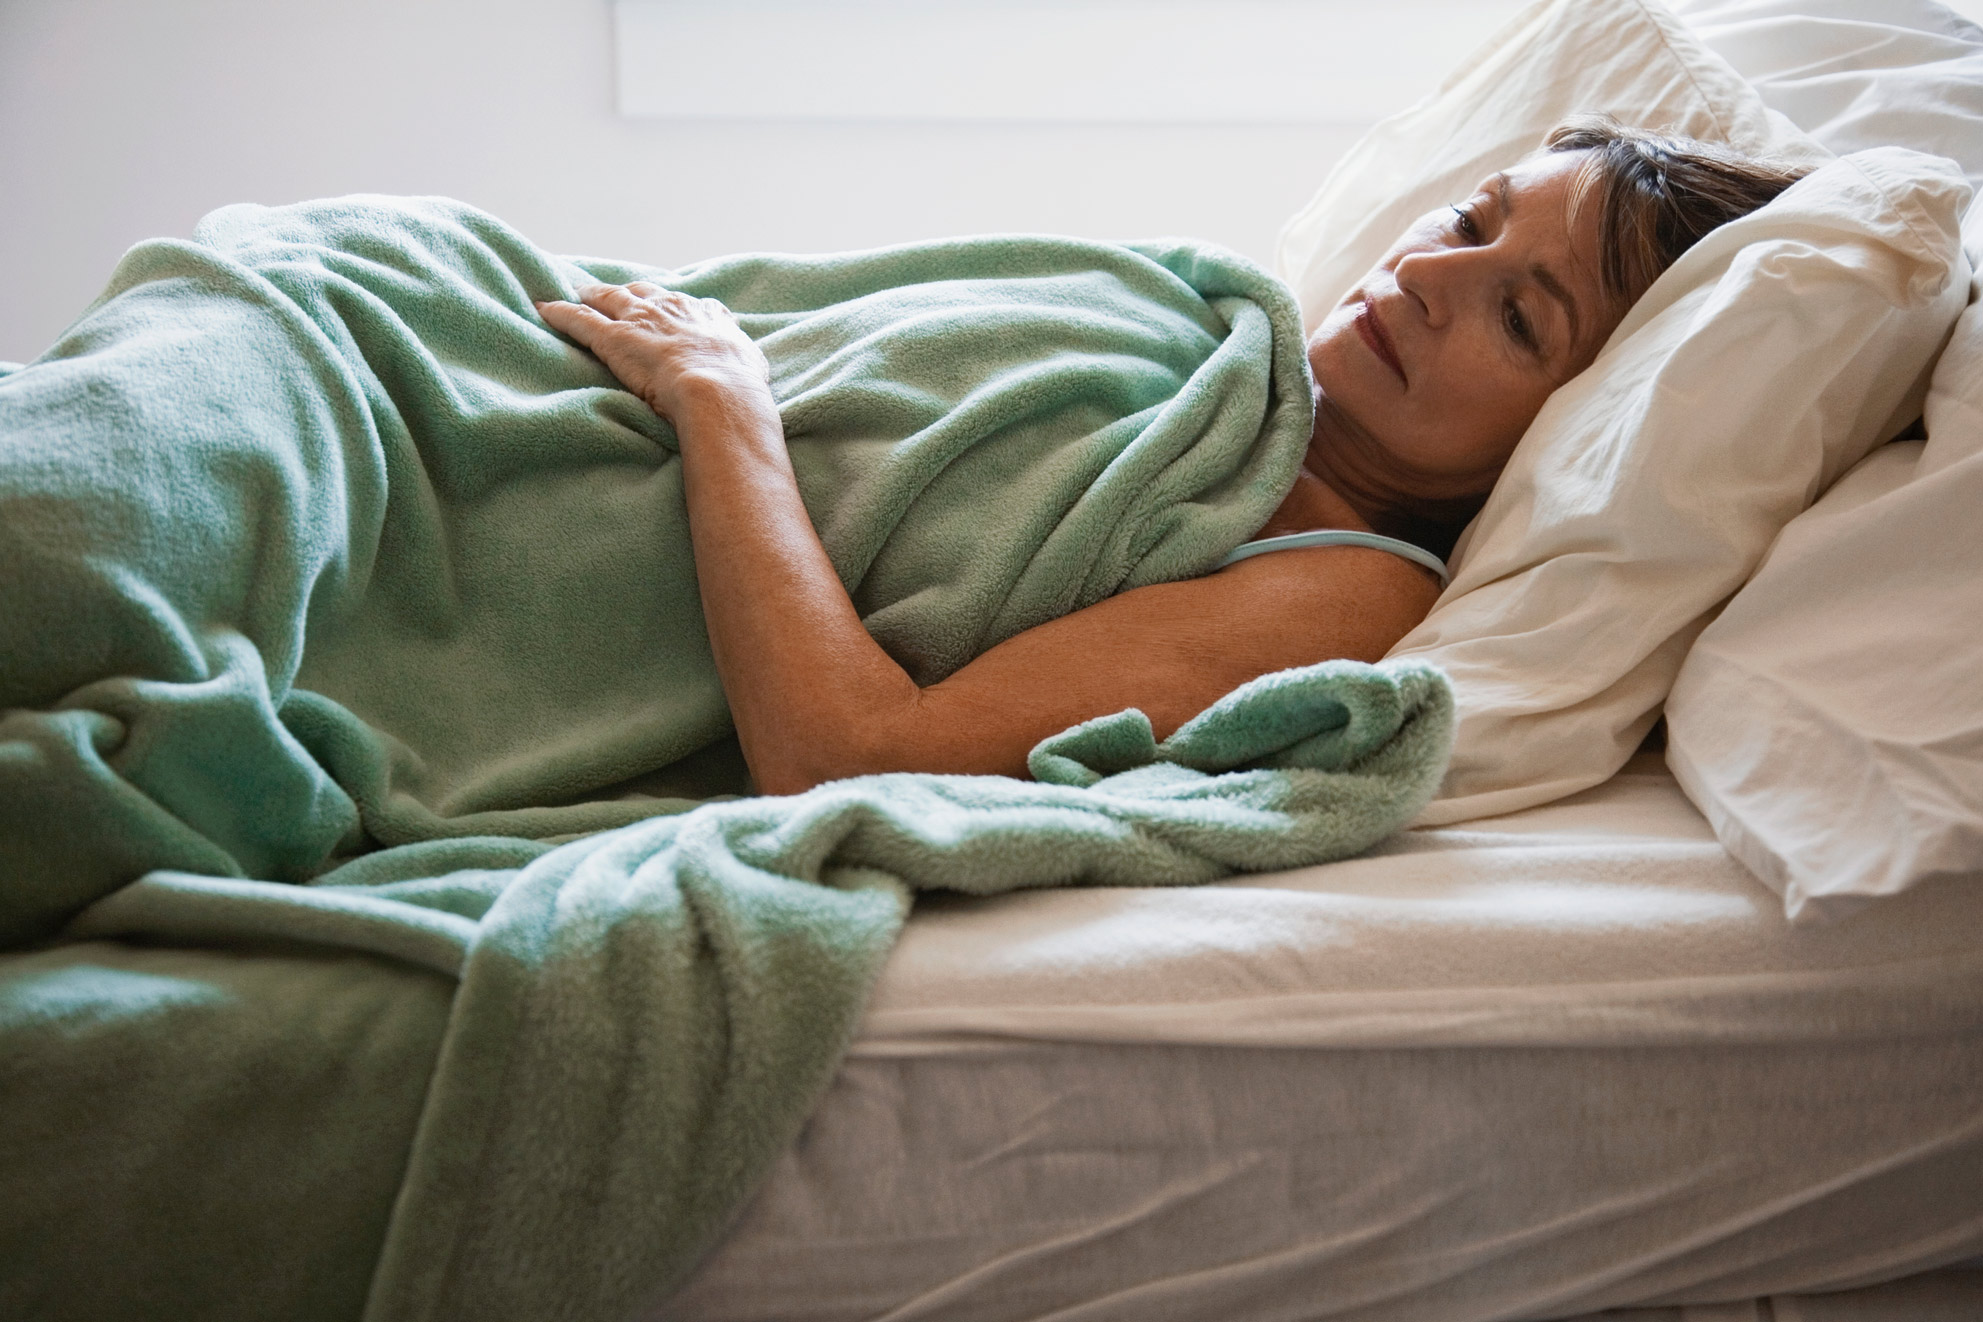 woman with insomnia trying to sleep in bed